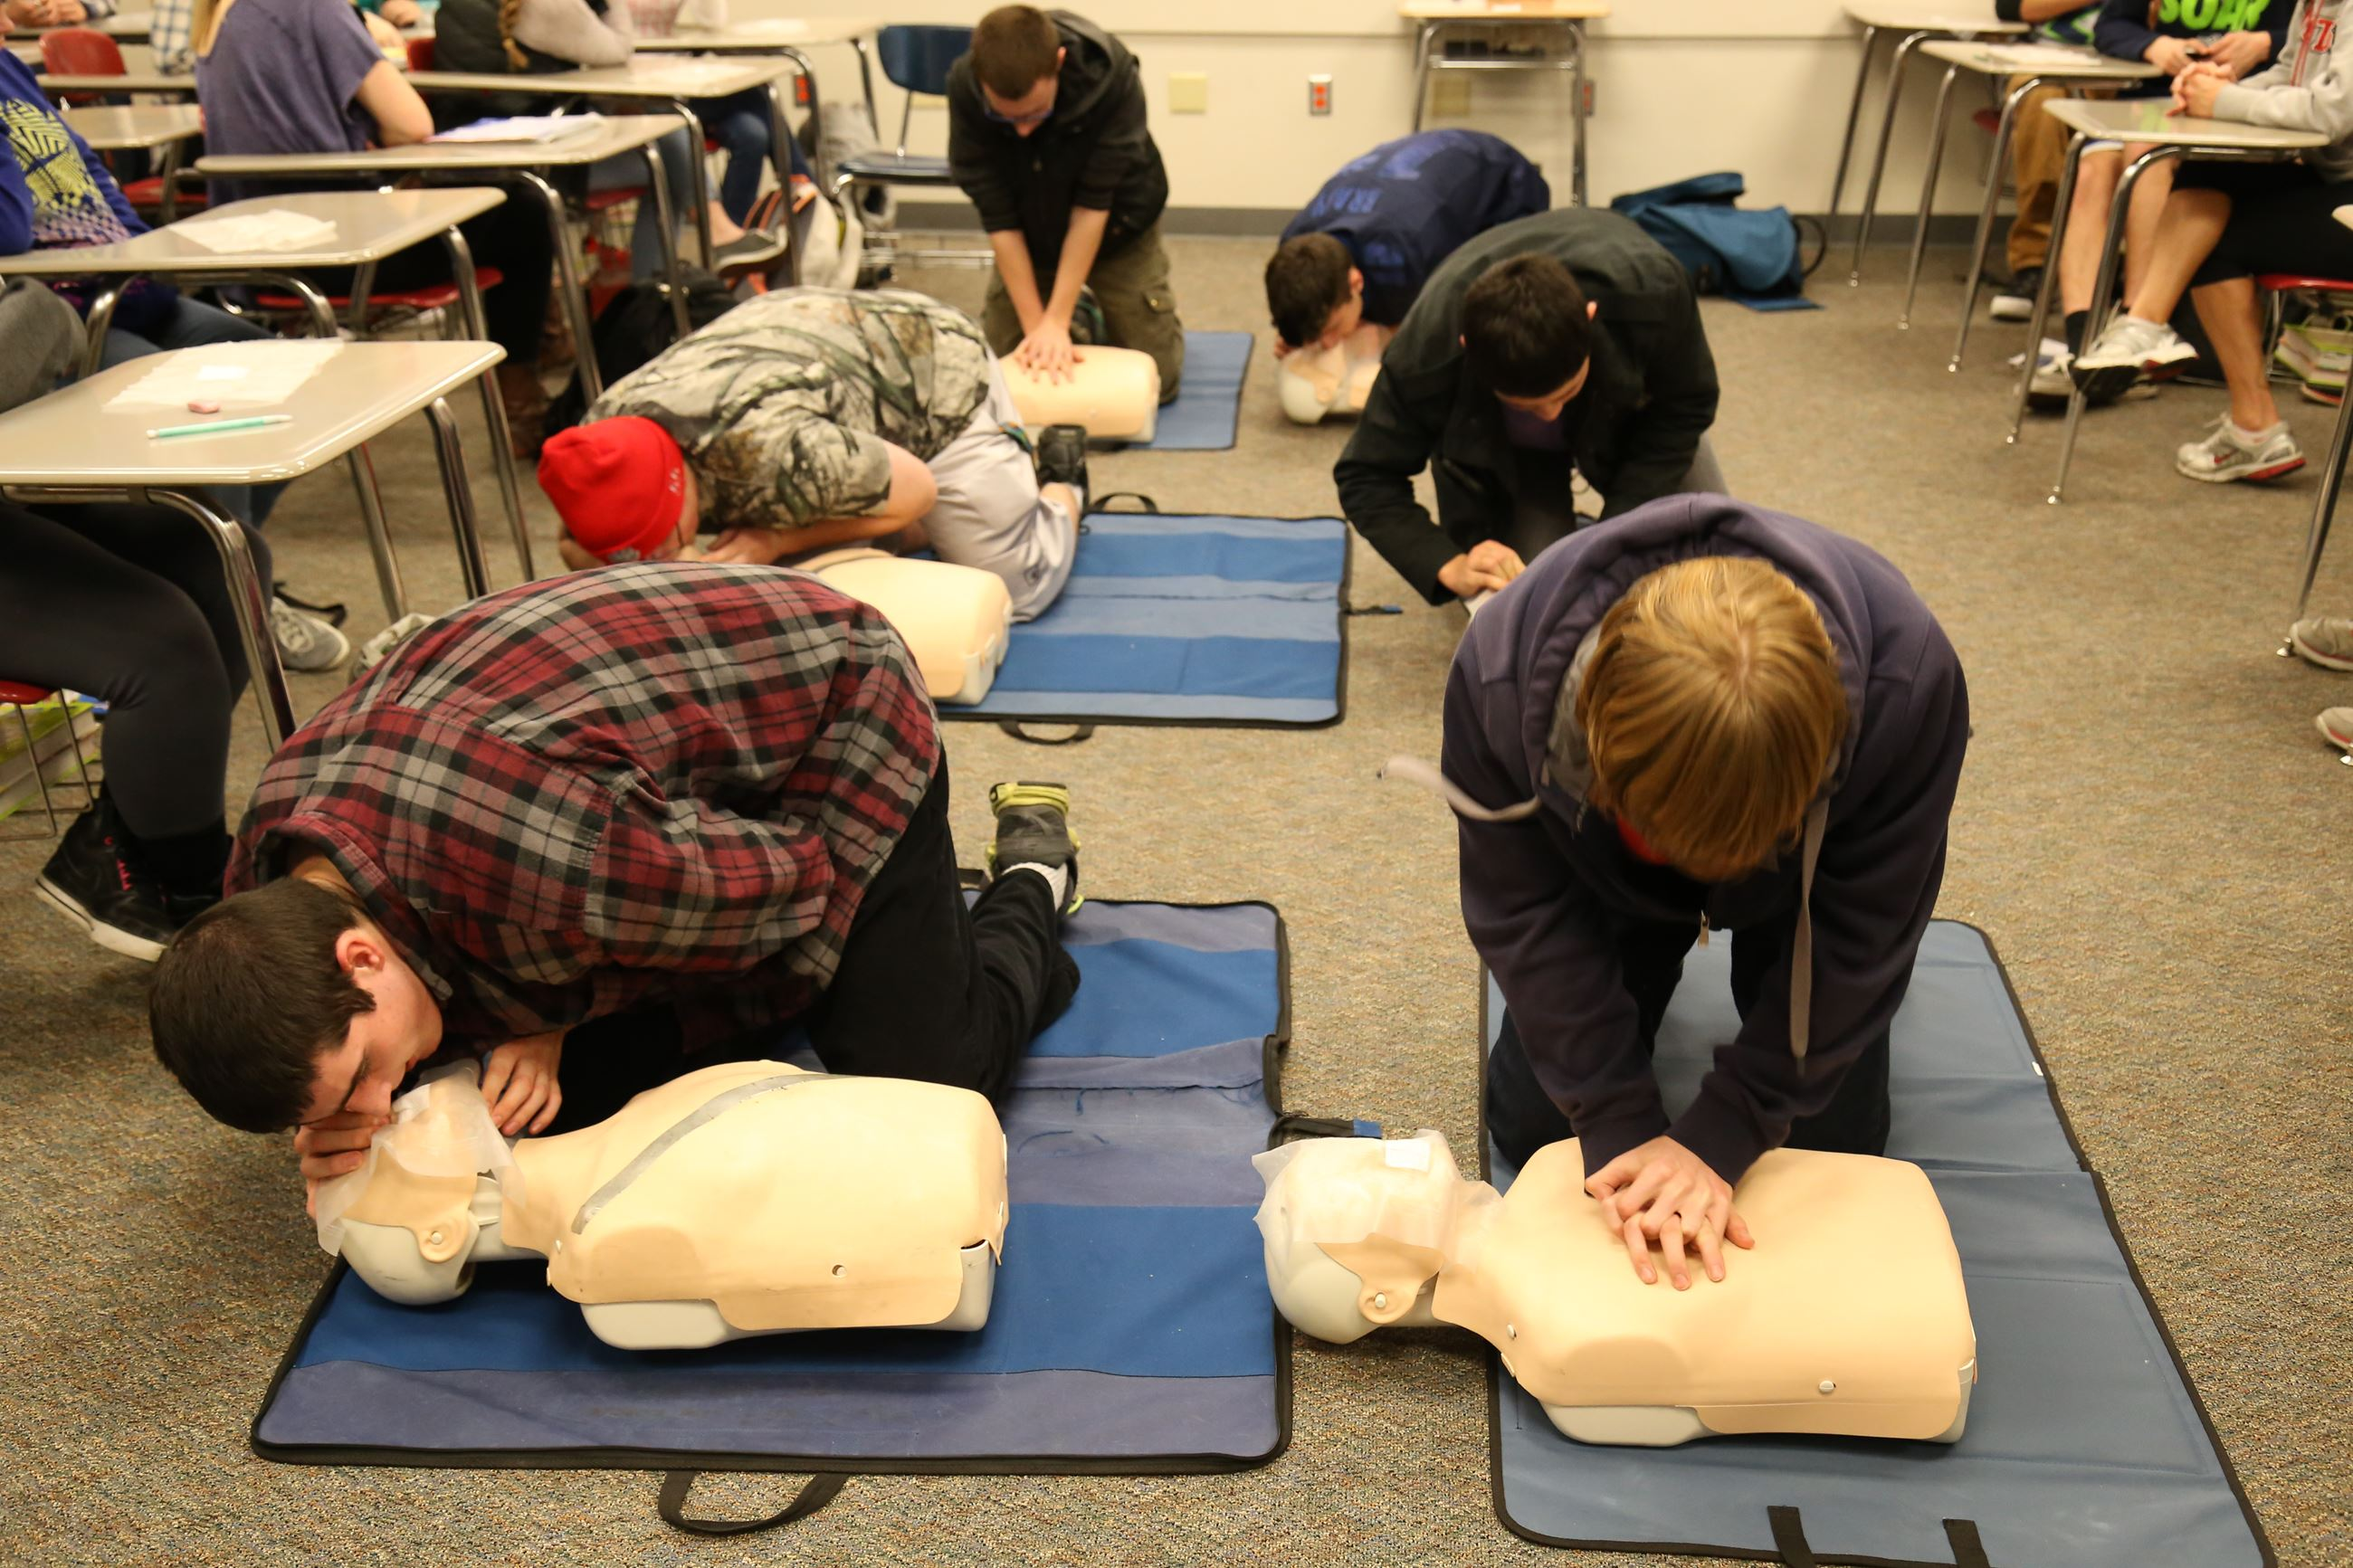 This is a photo of a high school boy practicing CPR.